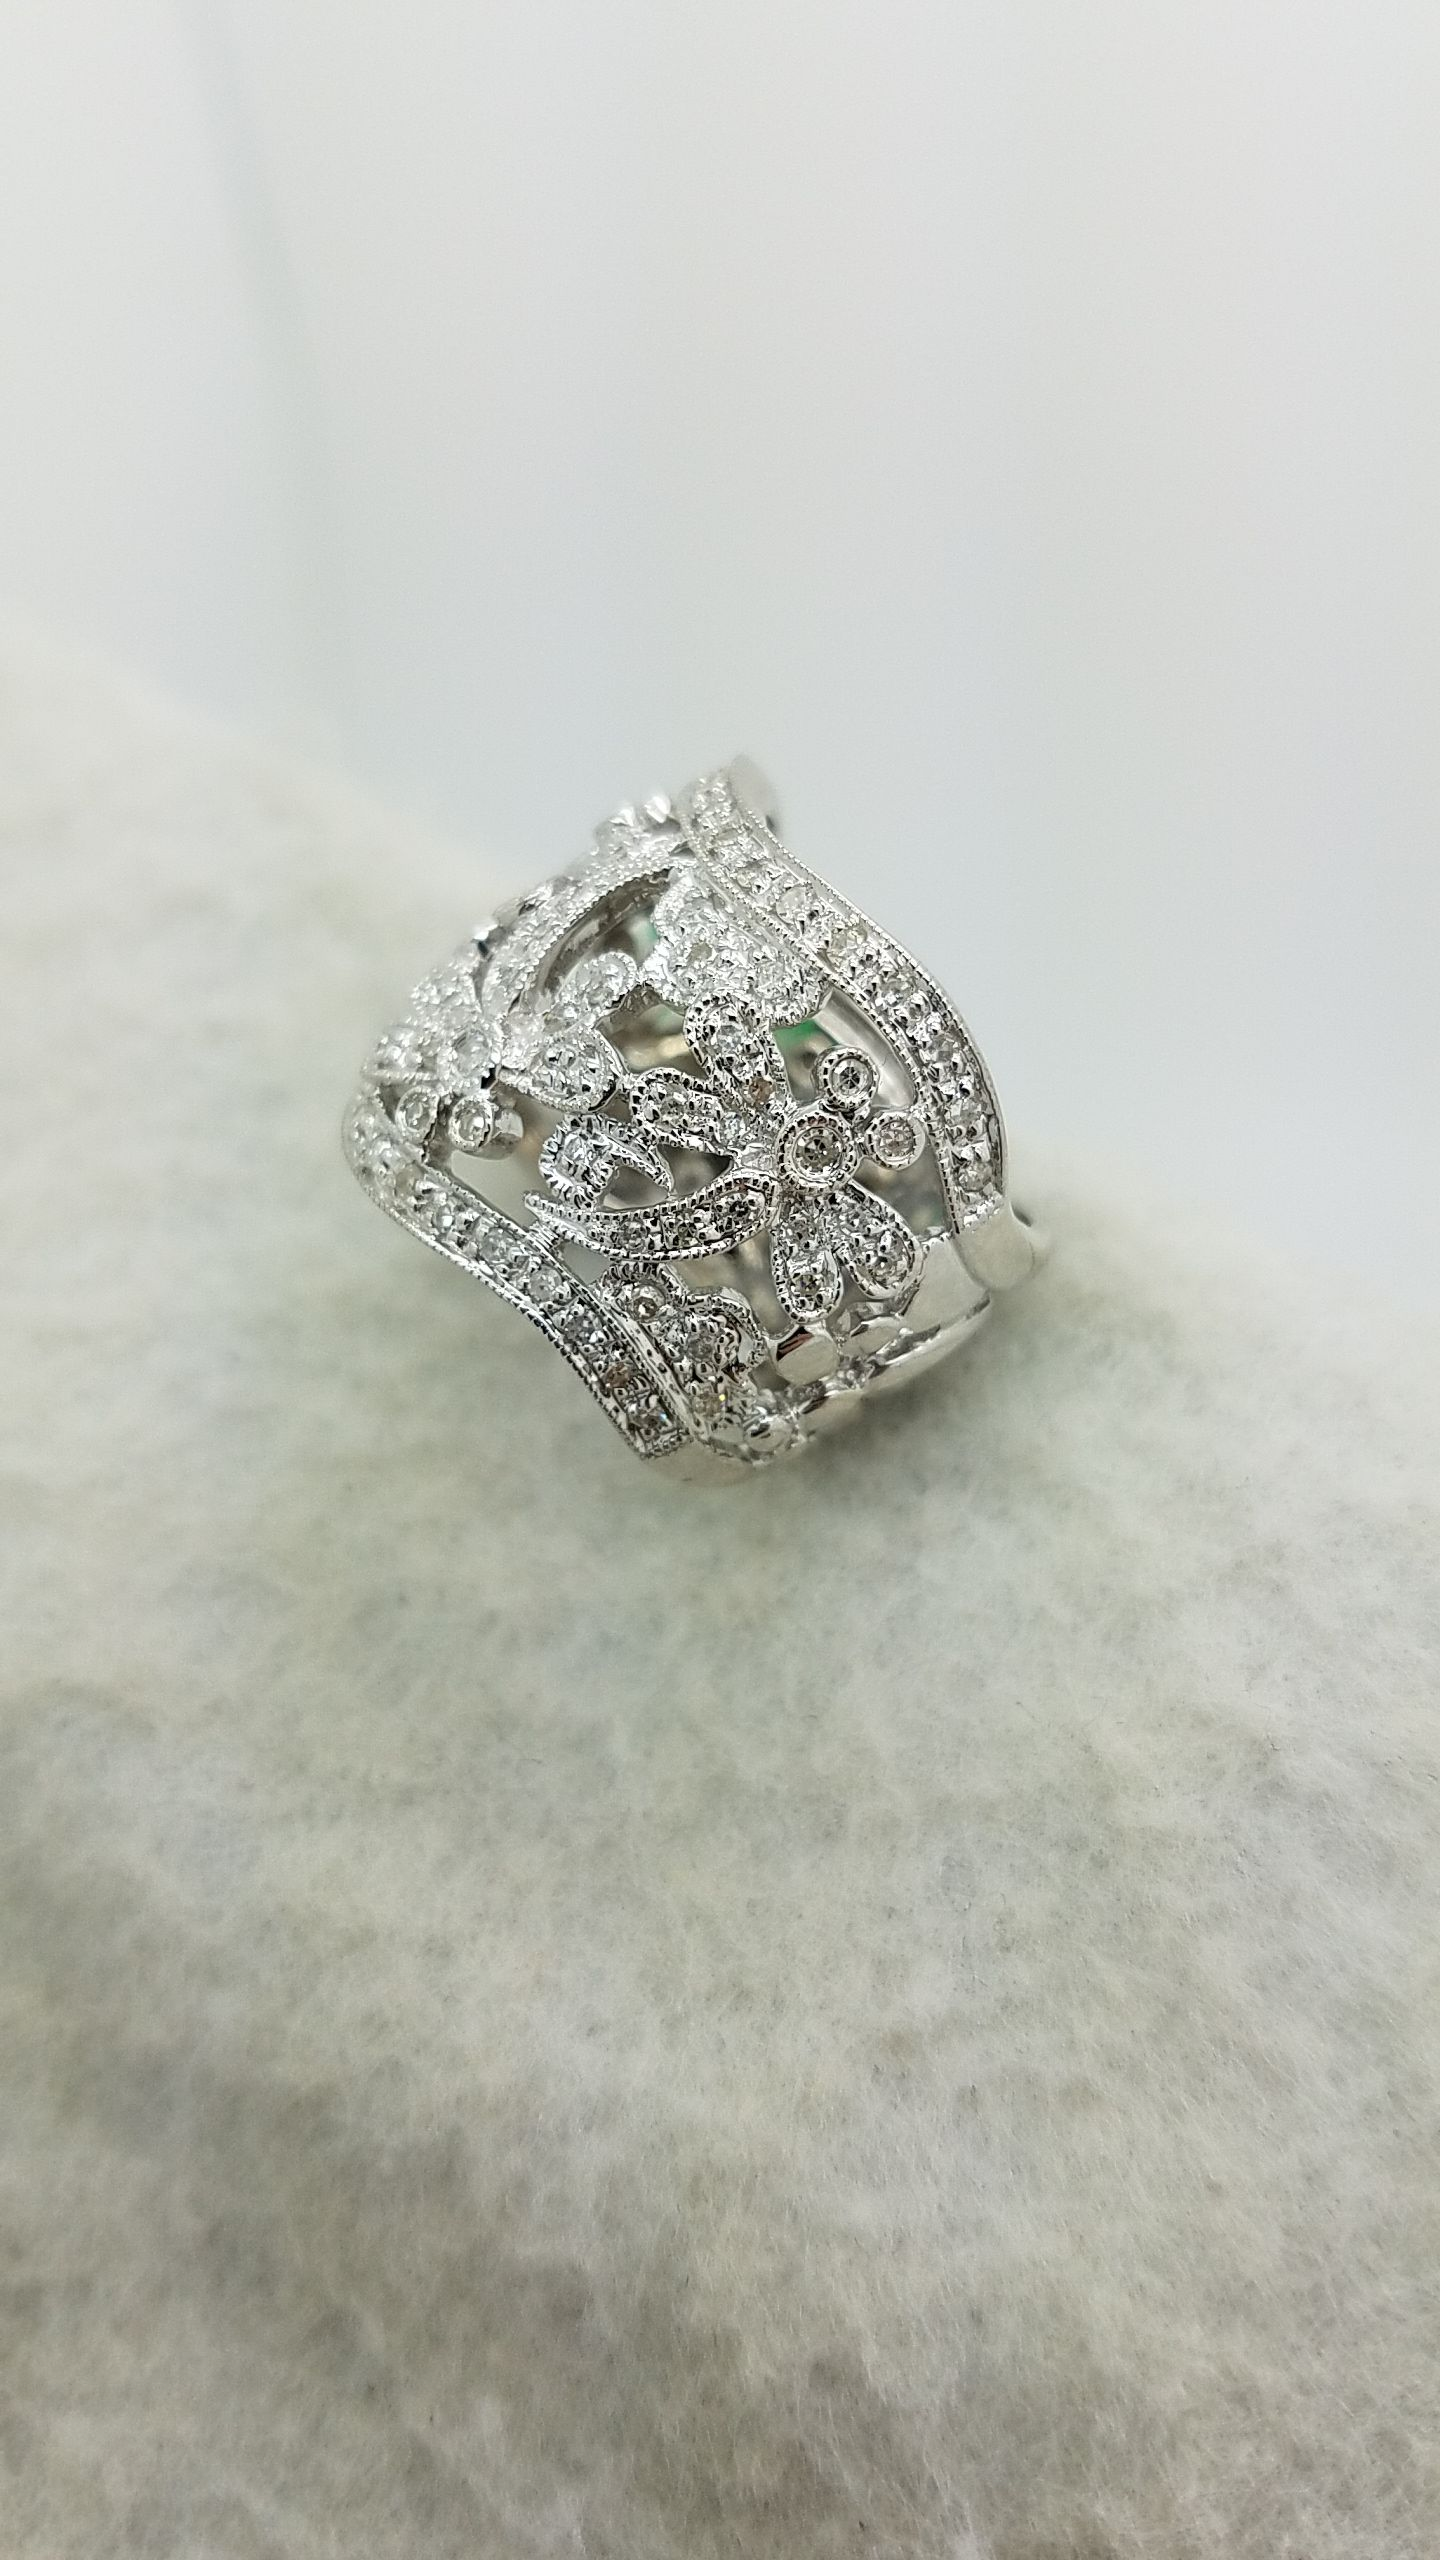 product silver shipping jewelry over on overstock dragonfly hills gold engagement black orders watches rings ring free